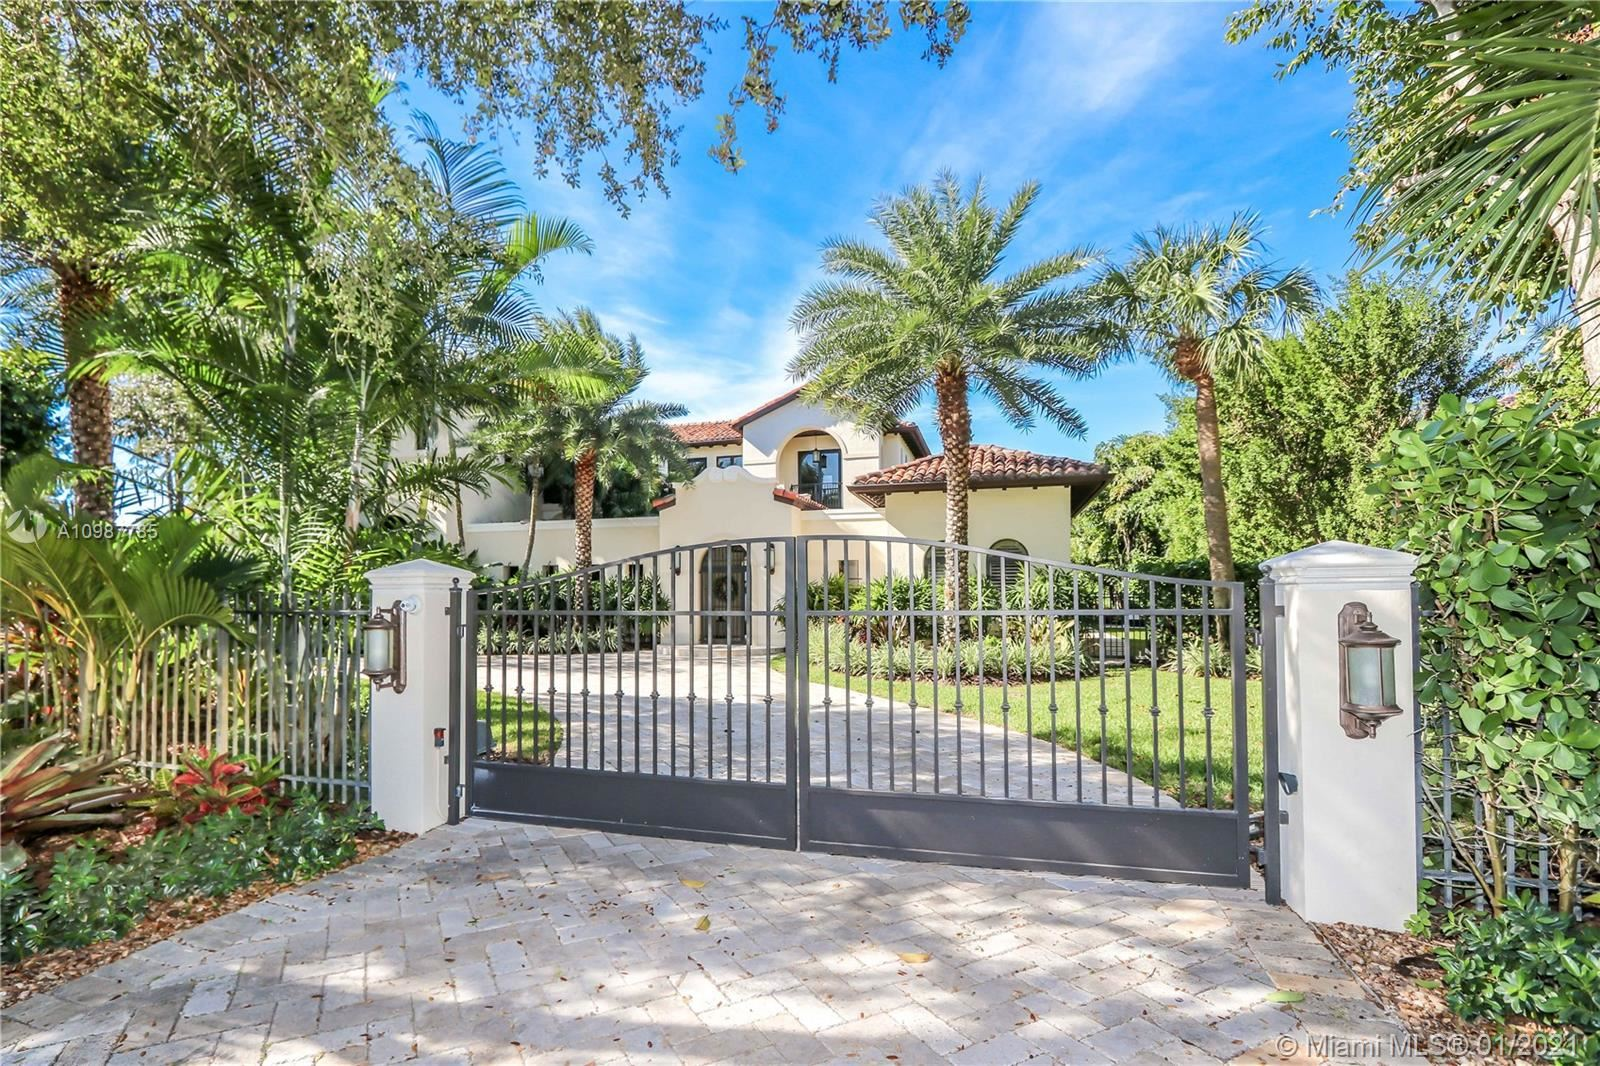 9580 SW 67th Ave, Pinecrest, FL 33156 - #: A10987785